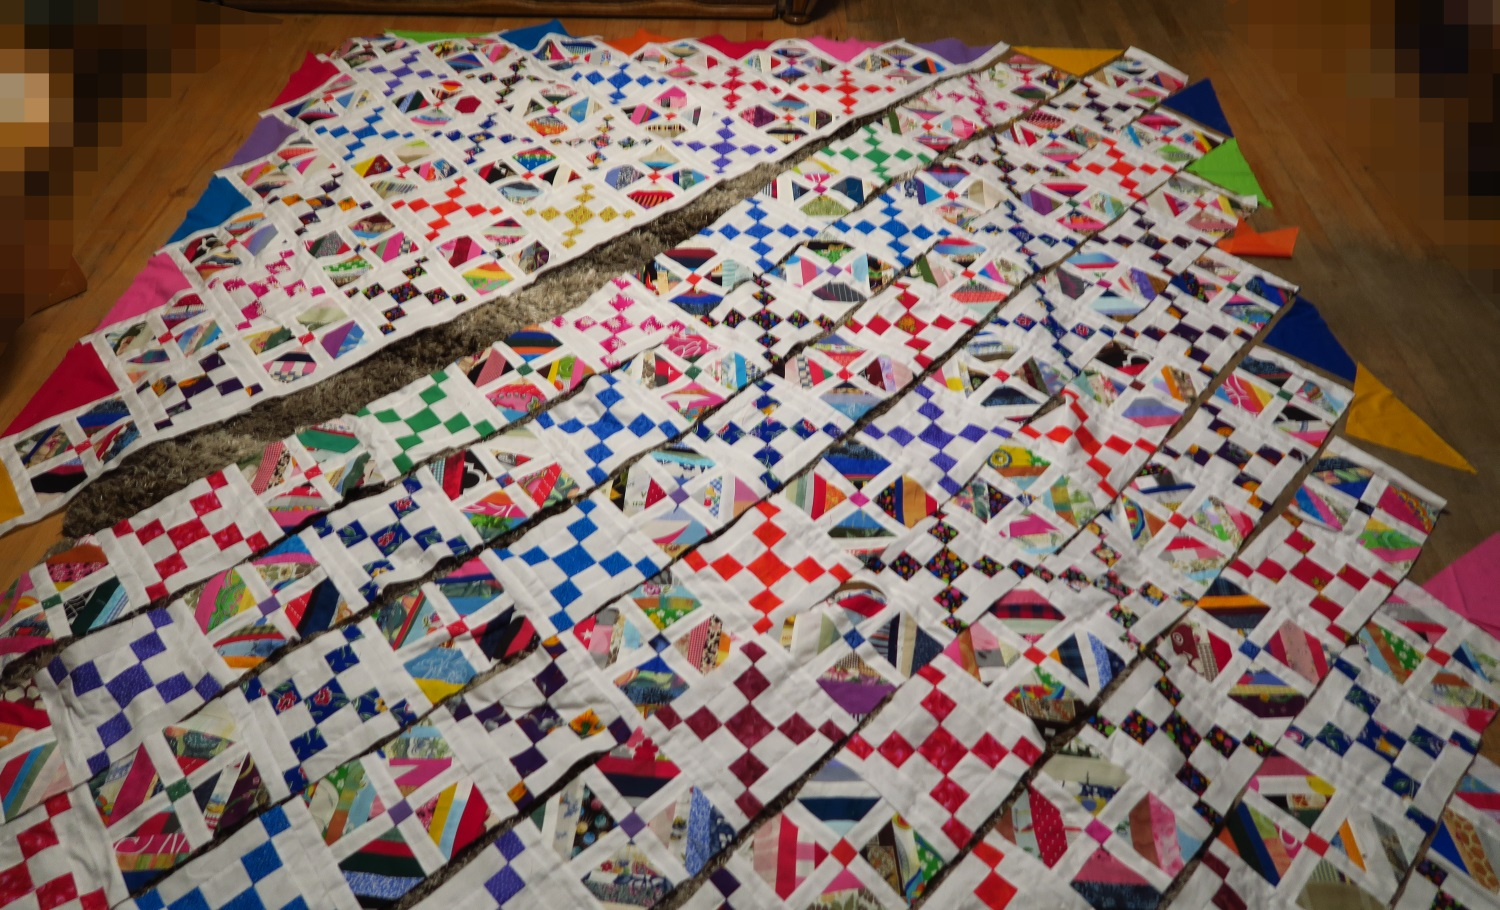 This is how it looked after I sewed the first 6 rows together. (These are diagonal rows as usual when making an on point quilt.)